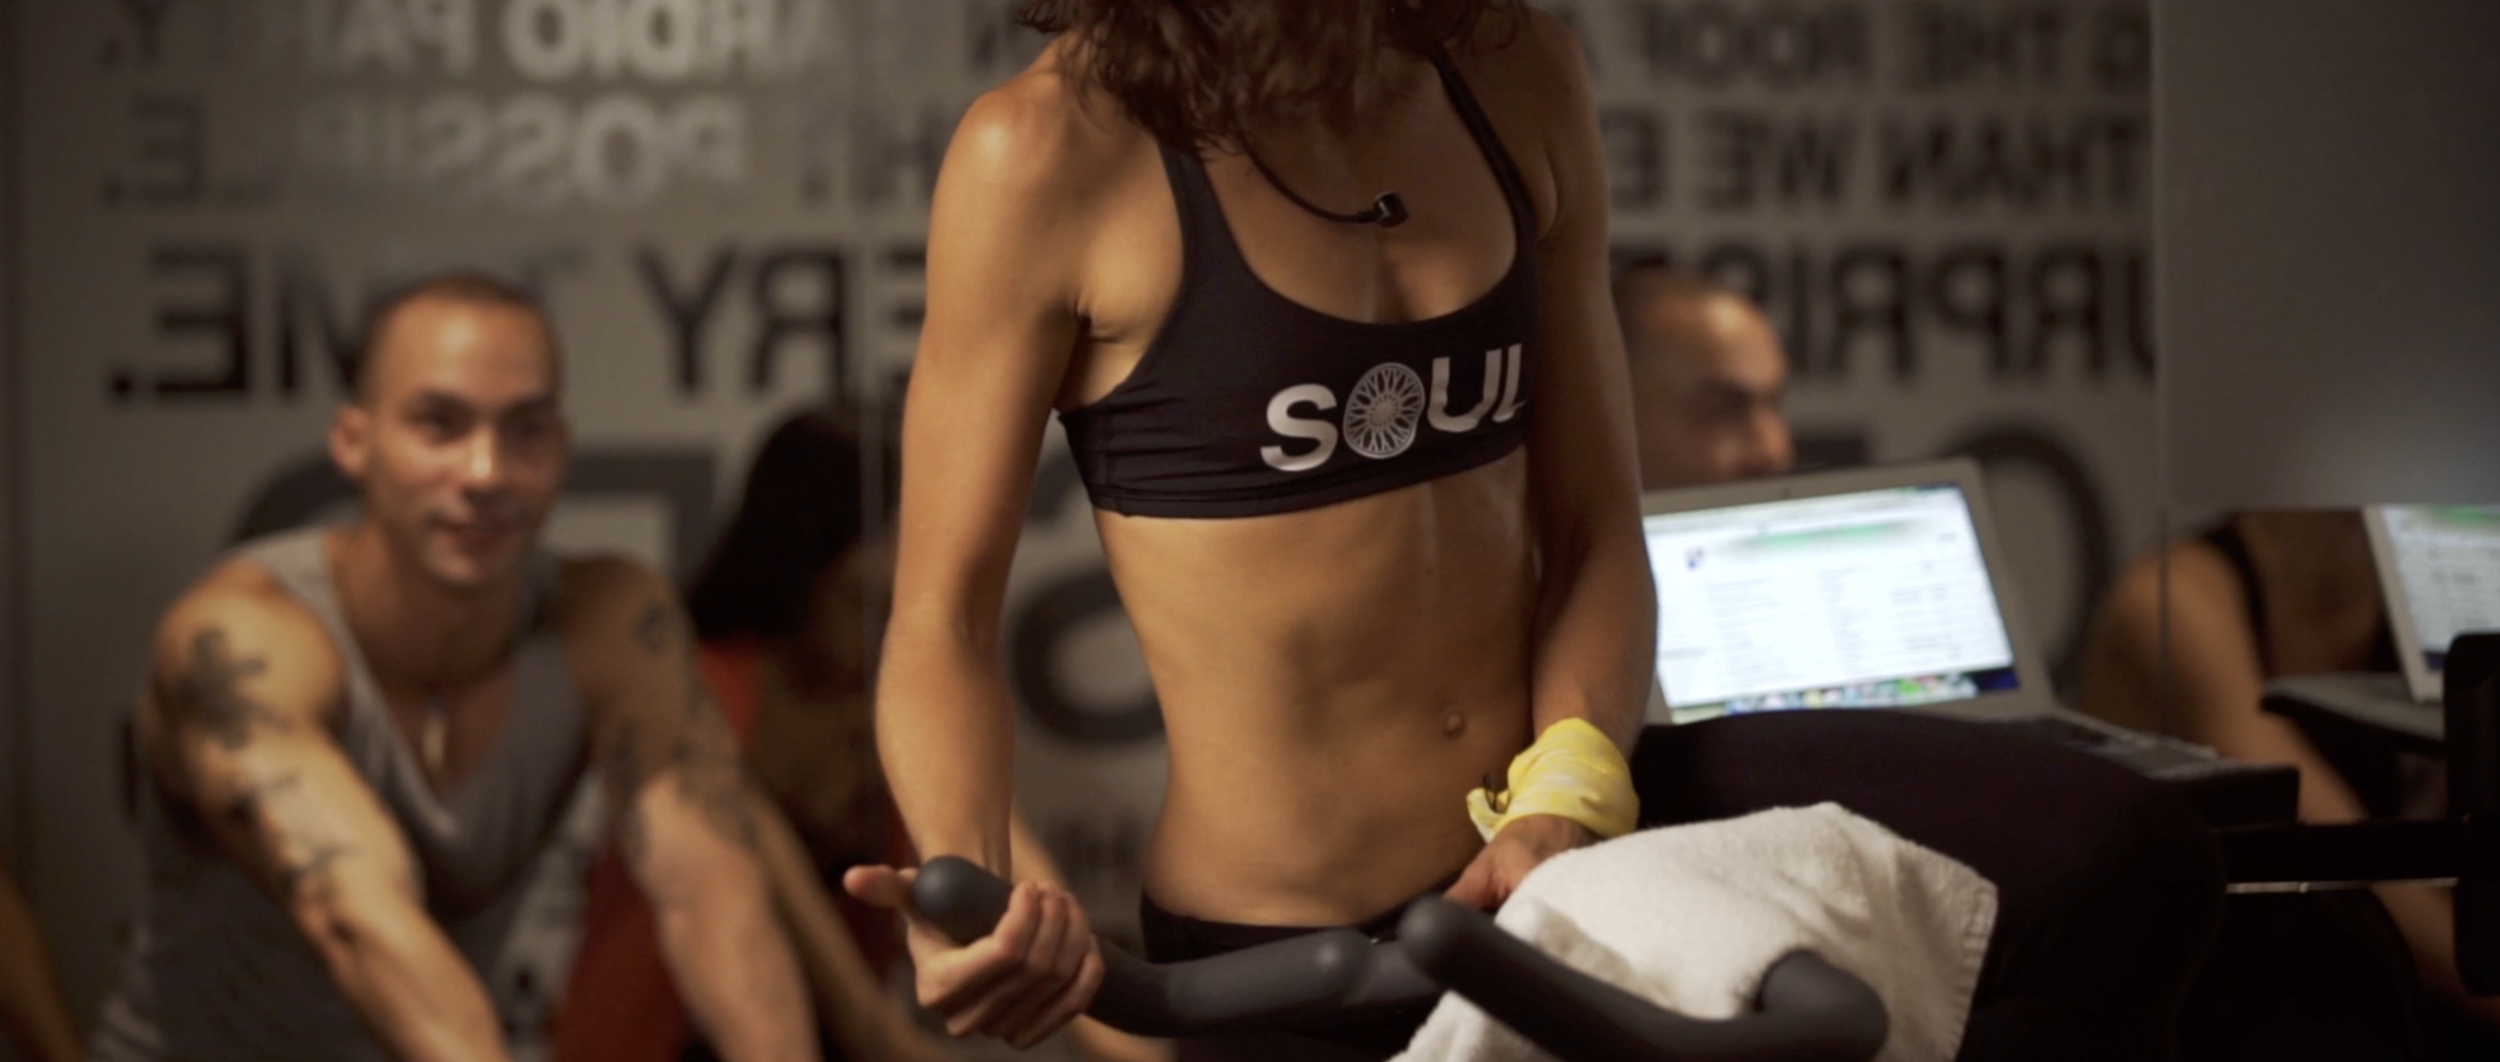 <strong>Soulcycle + The Chainsmokers</strong><p>BRANDED CONTENT »</p>